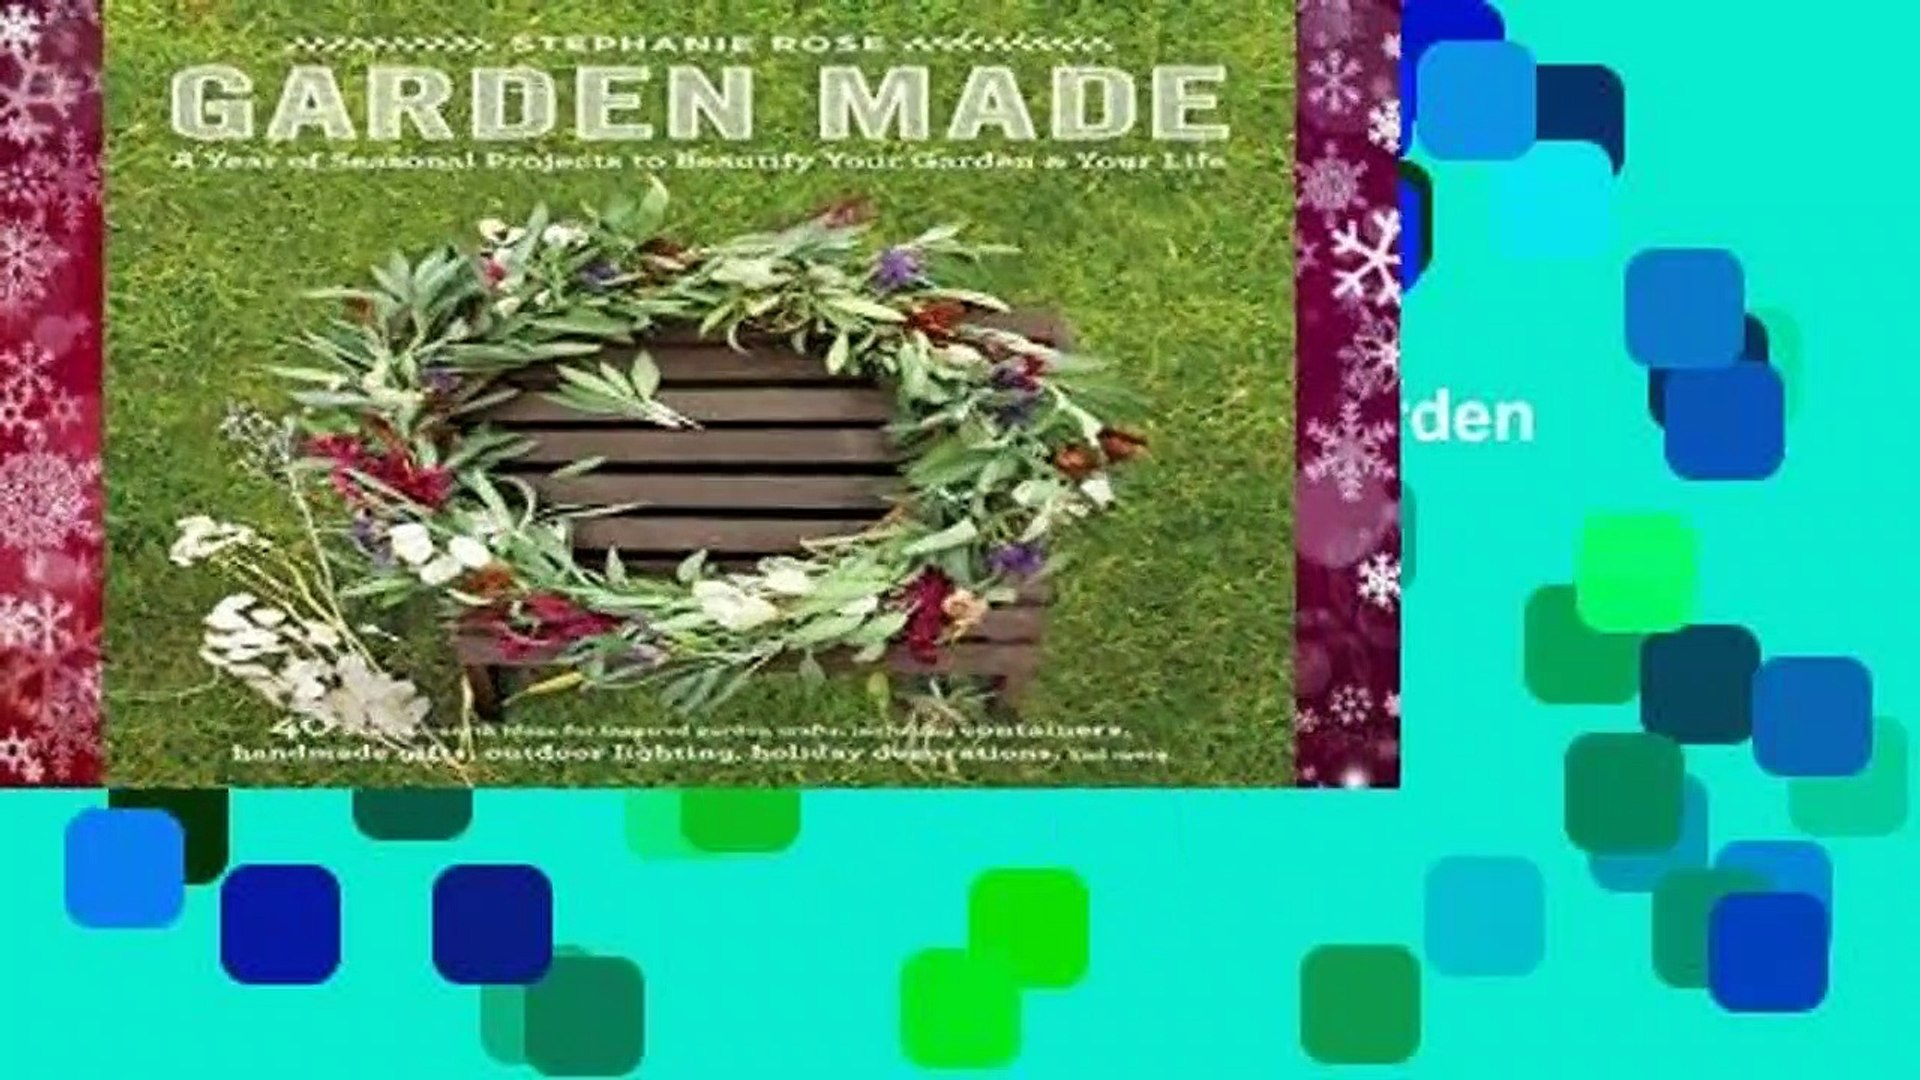 [GIFT IDEAS] Garden Made: A Year of Seasonal Projects to Beautify Your Garden and Your Life by